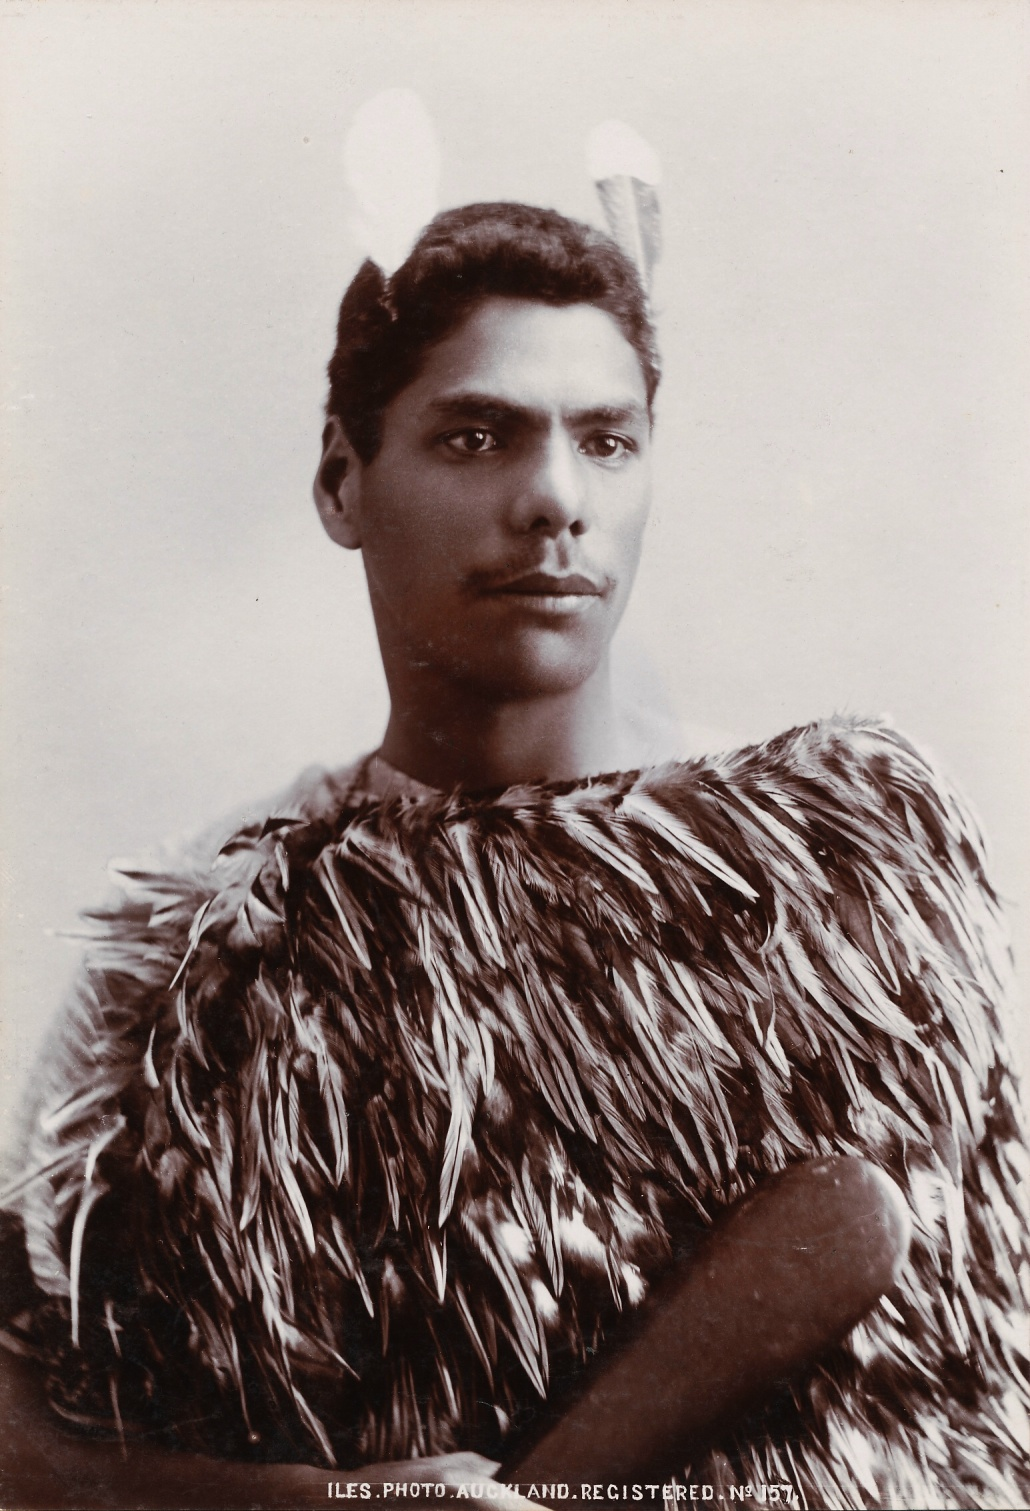 Maori with Patu. New Zealand C1895. Photographer Iles. Silver Gelatin Silver Print, Size 19.5 X 13.5 cm ( 7.75 X 5.25 in )